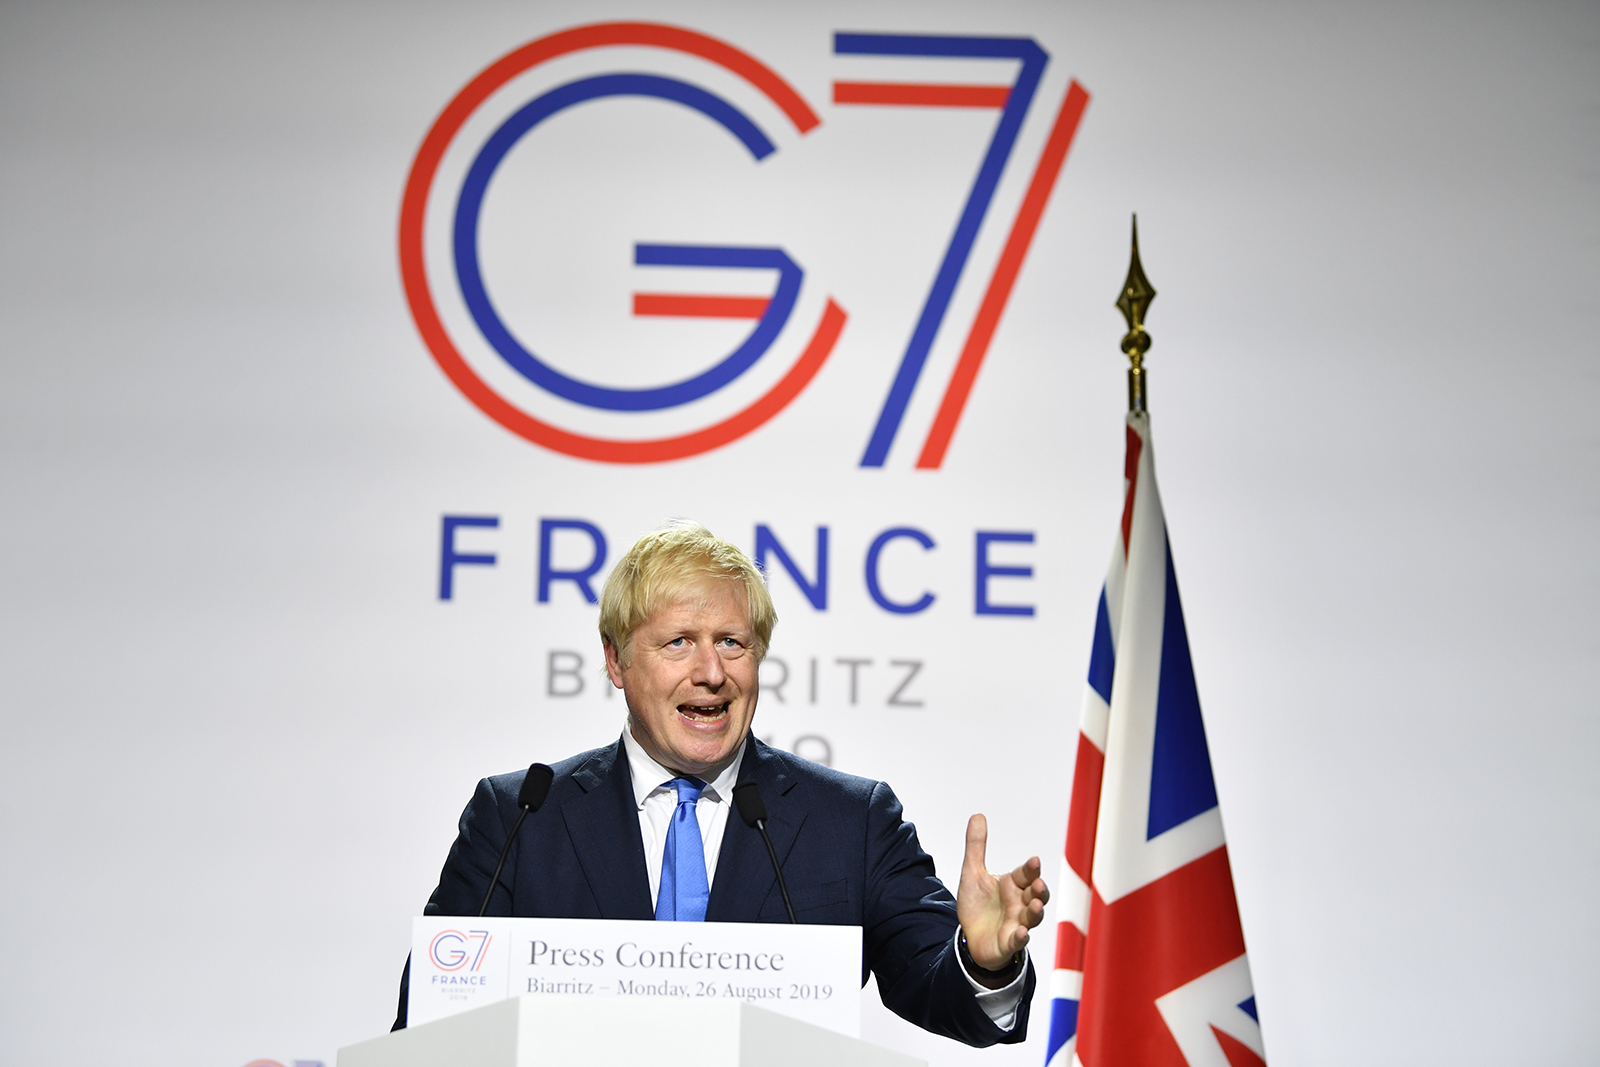 British Prime Minister Boris Johnson speaks during a press conference at the conclusion of the G7 summit in Biarritz, France, on August 24, 2019.